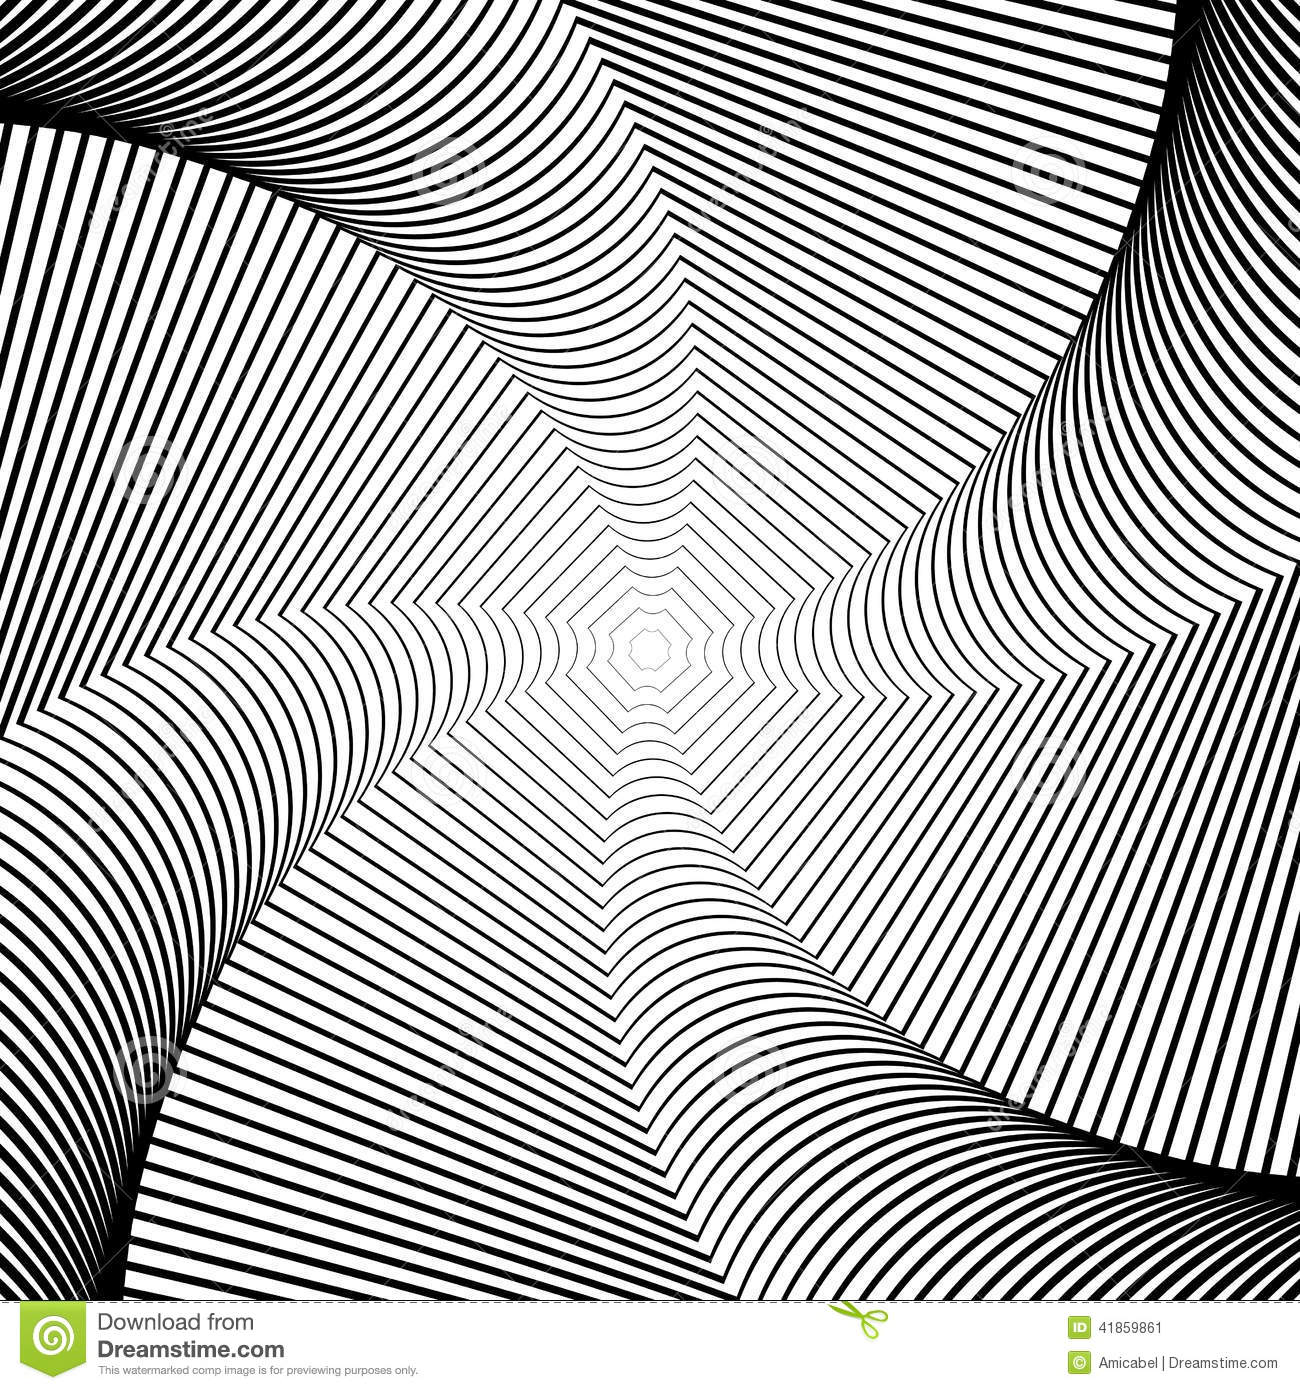 Line Art Movement : Design whirlpool movement illusion background stock vector